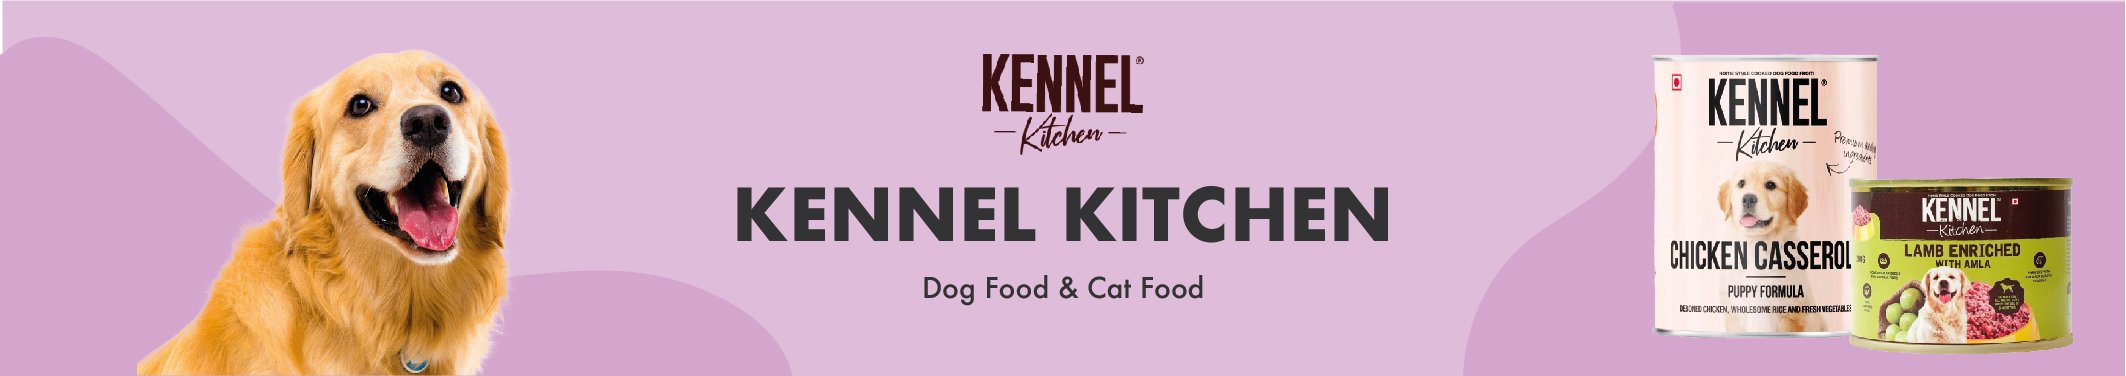 Kennel Kitchen Dog and Cat Food